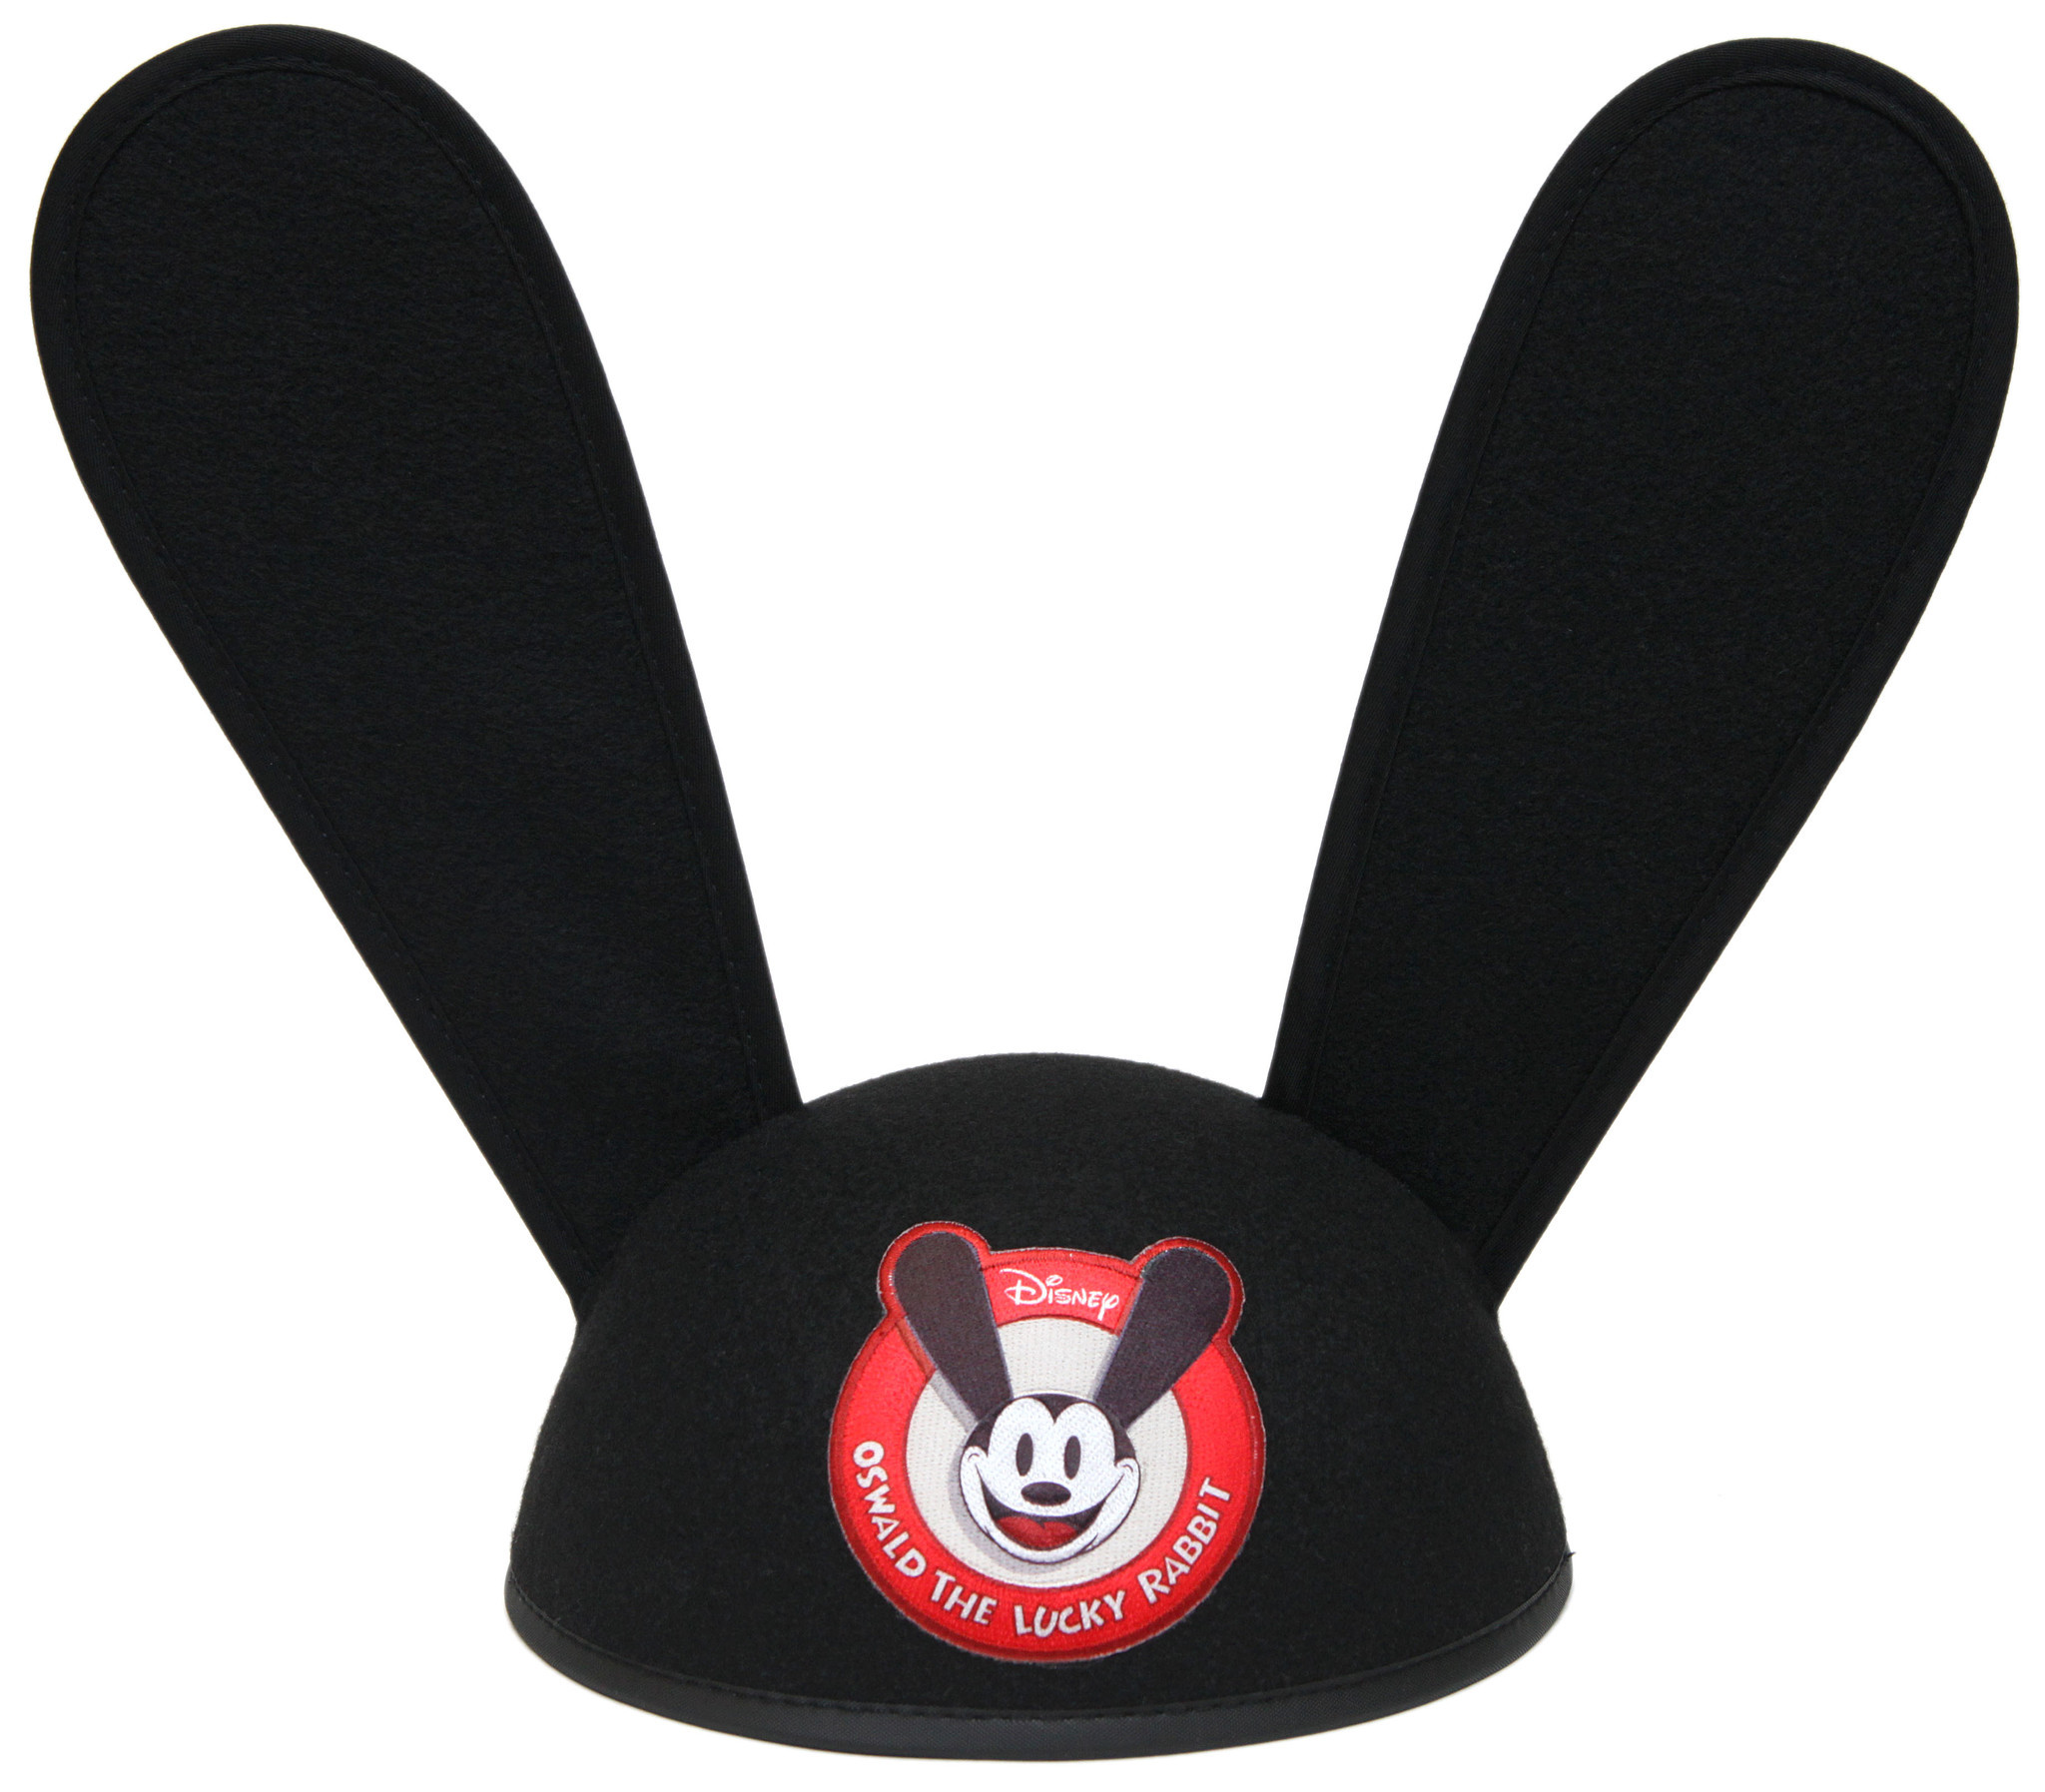 Oswald hats mimic the character's rabbit-ears look.